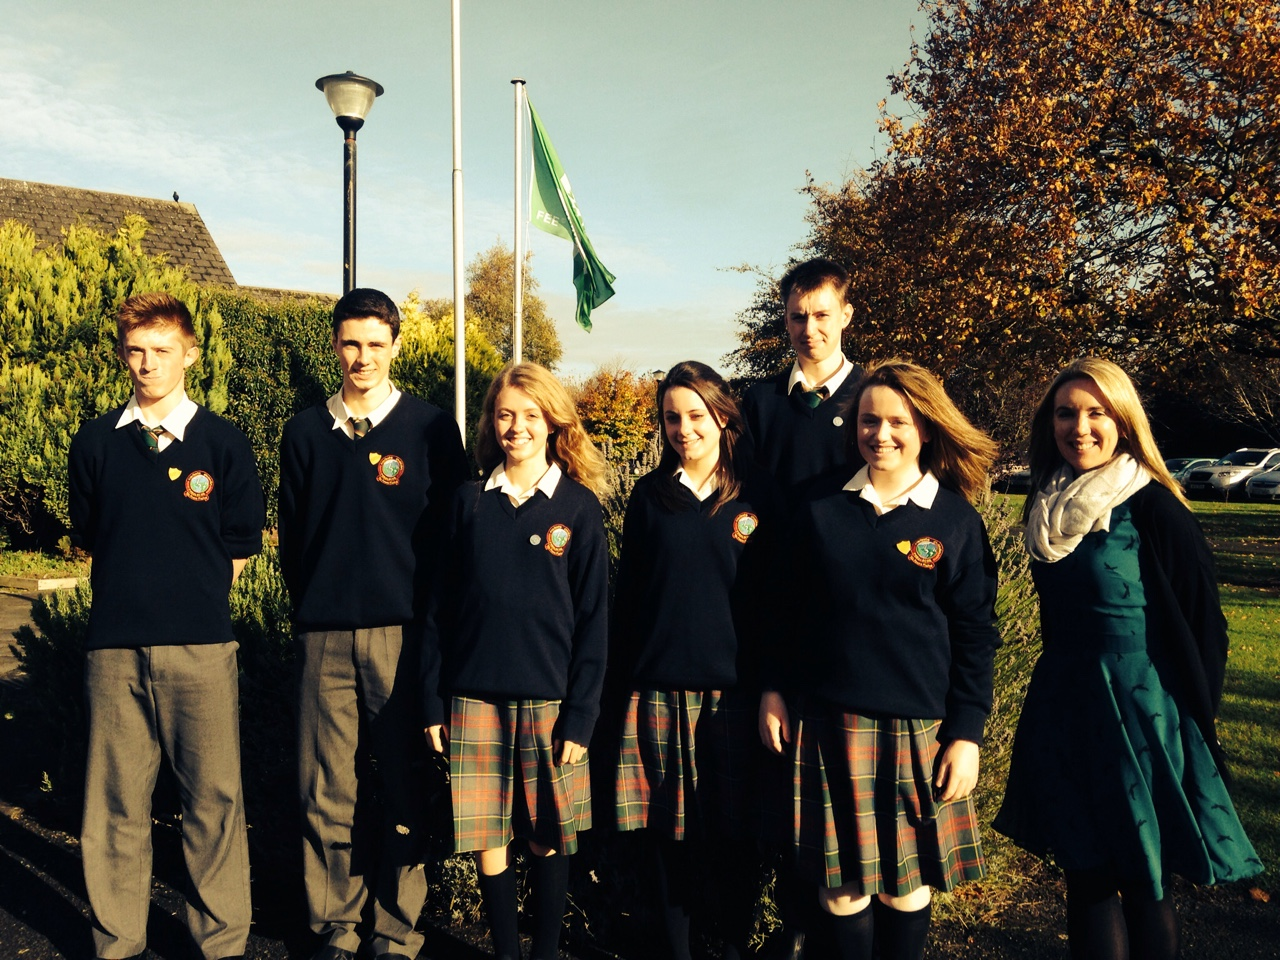 Debating News  On Wednesday the 22nd of October, the Colaiste Chiarain Senior Debating team participated in their first Concern debate of this school year. The team successfully opposed the motion that 'Critics who poured water on the Ice Bucket Challenge were unfair'. The proposition, who hosted the debate, were an excellent Ratoath College. Conall Hayes (captain), Luke Ecock, Alanna Devitt and David Kelly  were fantastic on the night and are looking forward to their next debate in a feels time.   The team comprised of Luke Ecock, Conall Hayes (captain), Alana Devitt, Michelle Daly (sub), David Kelly, Robyn Gibney (sub) and Ms Keher (mentor)